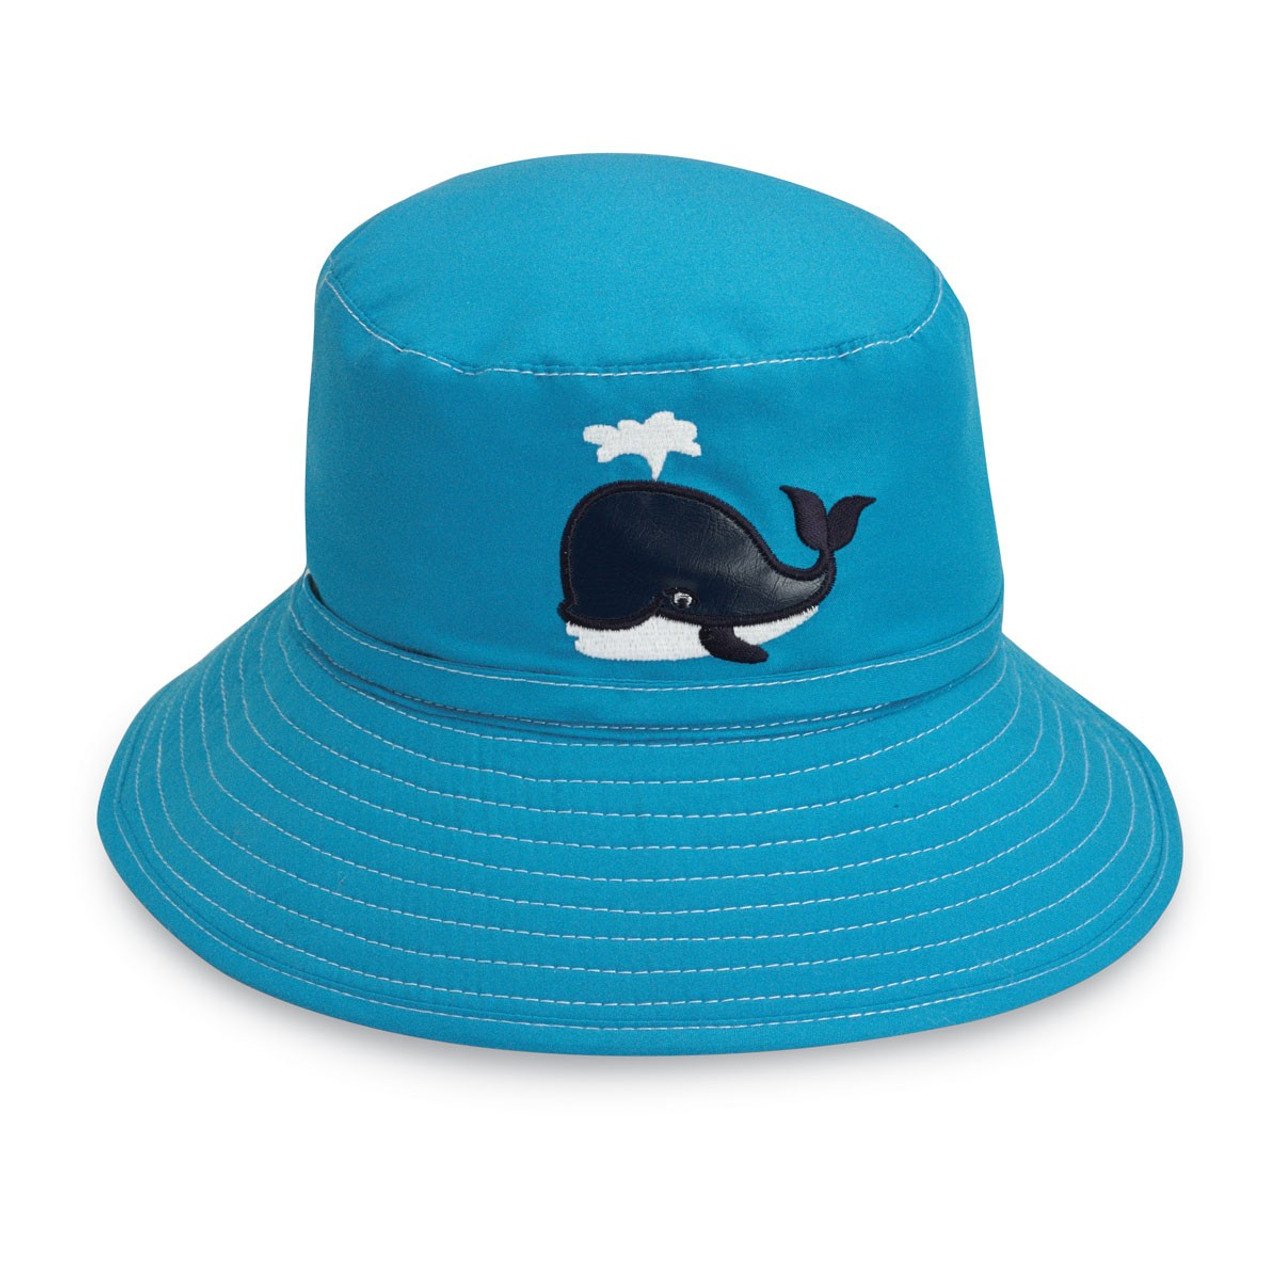 Childrens wallaroo UPF50+ whale uv sun hat f20cff4e9670